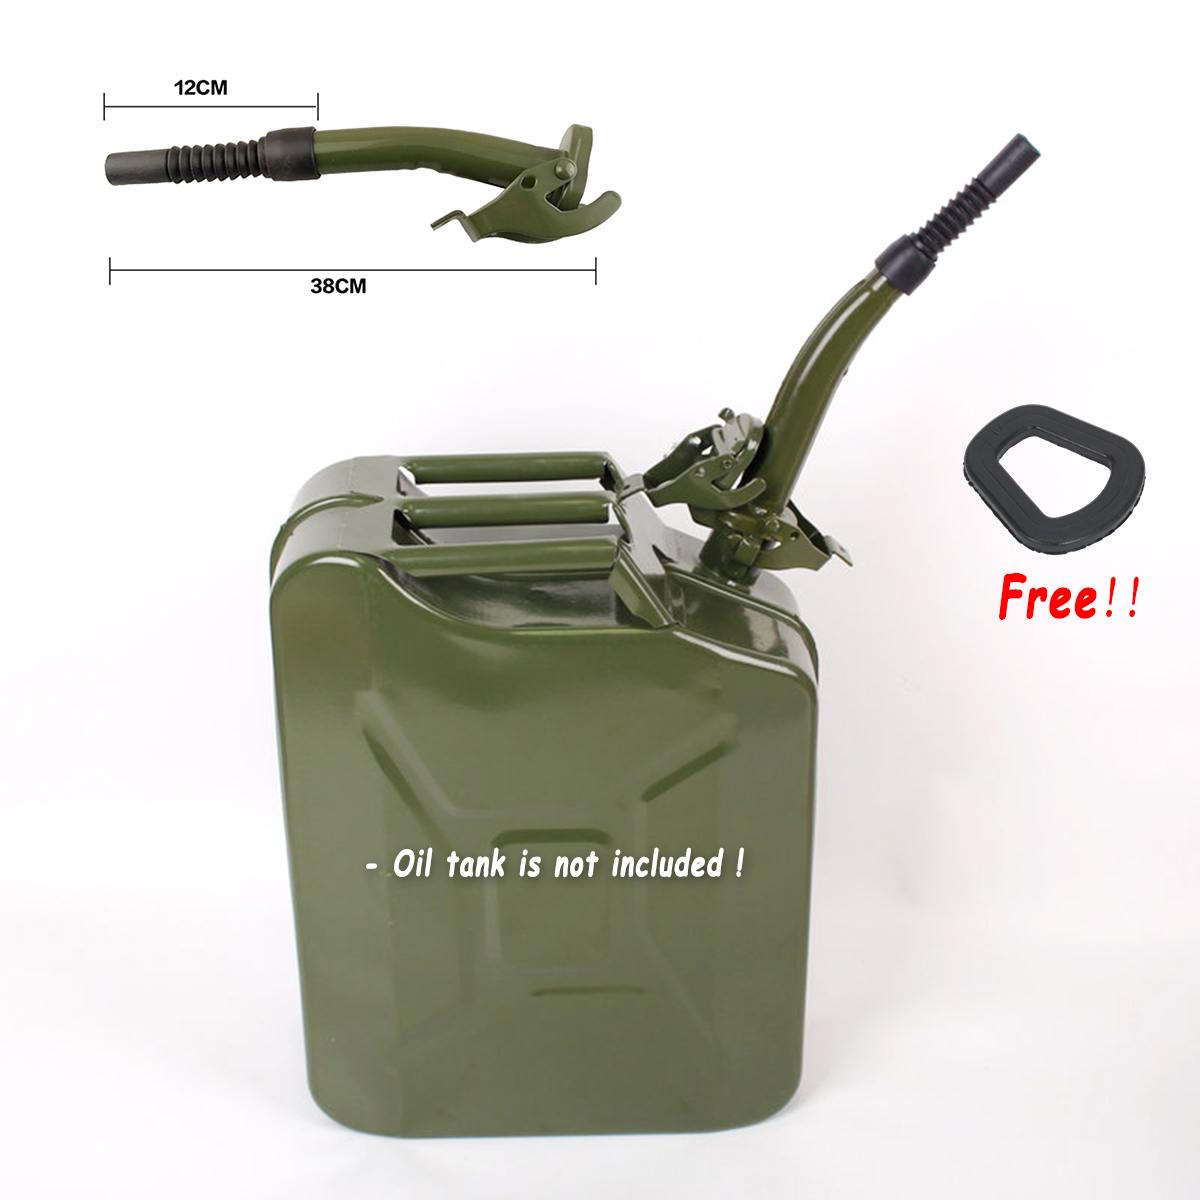 For 5/10/20 Litre Jerry Cans Metal Rubber Jerry Gerry Can Pouring Spout Flexible Nozzle Petrol Fuel Seal 38cm + Sealing Gasket